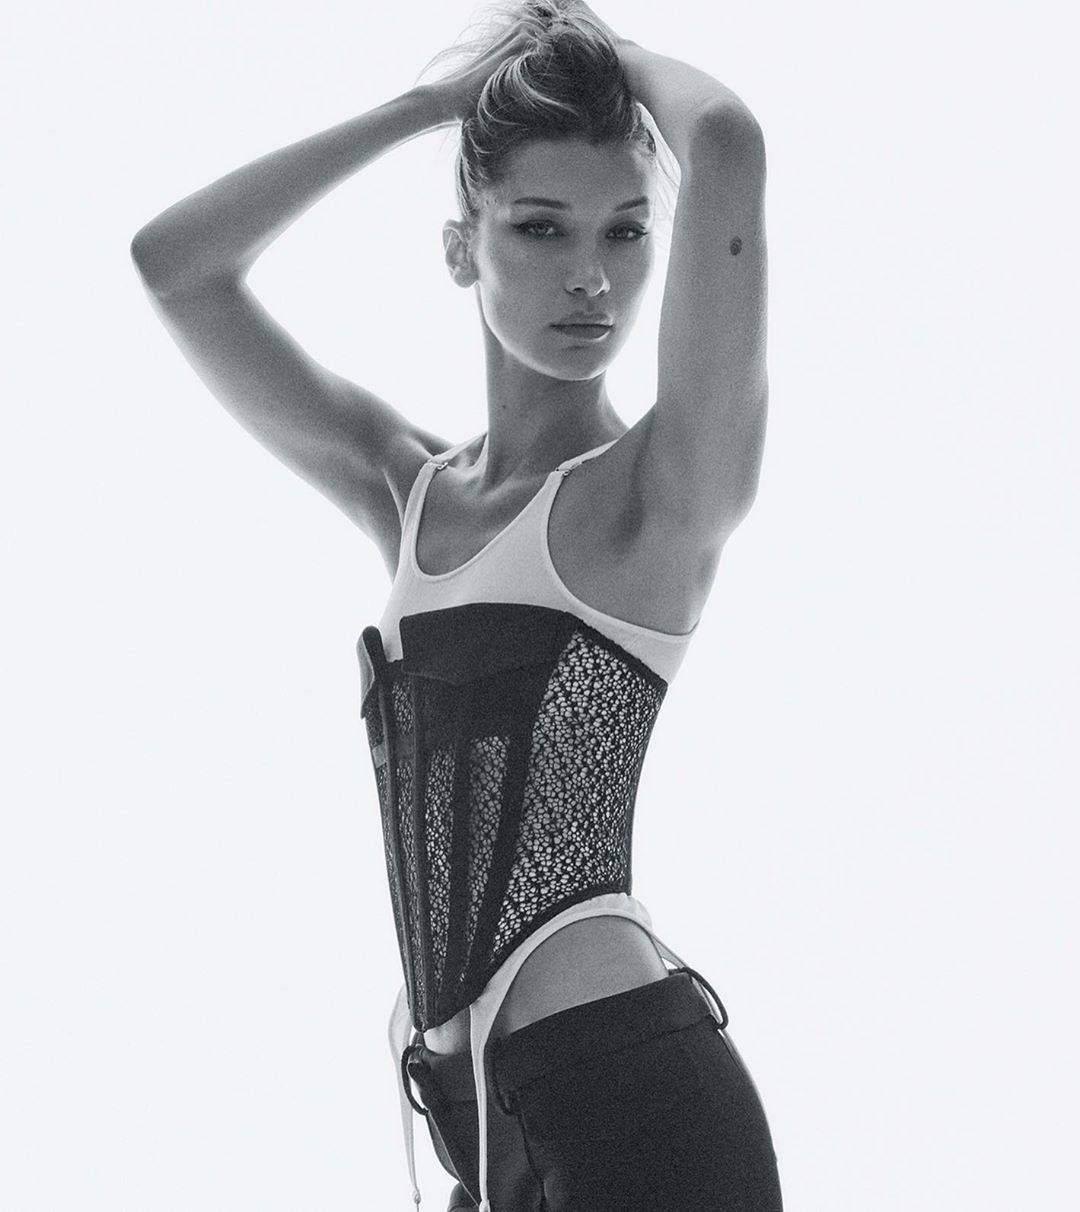 Bella Hadid is making heads turn with her stunning photoshoots